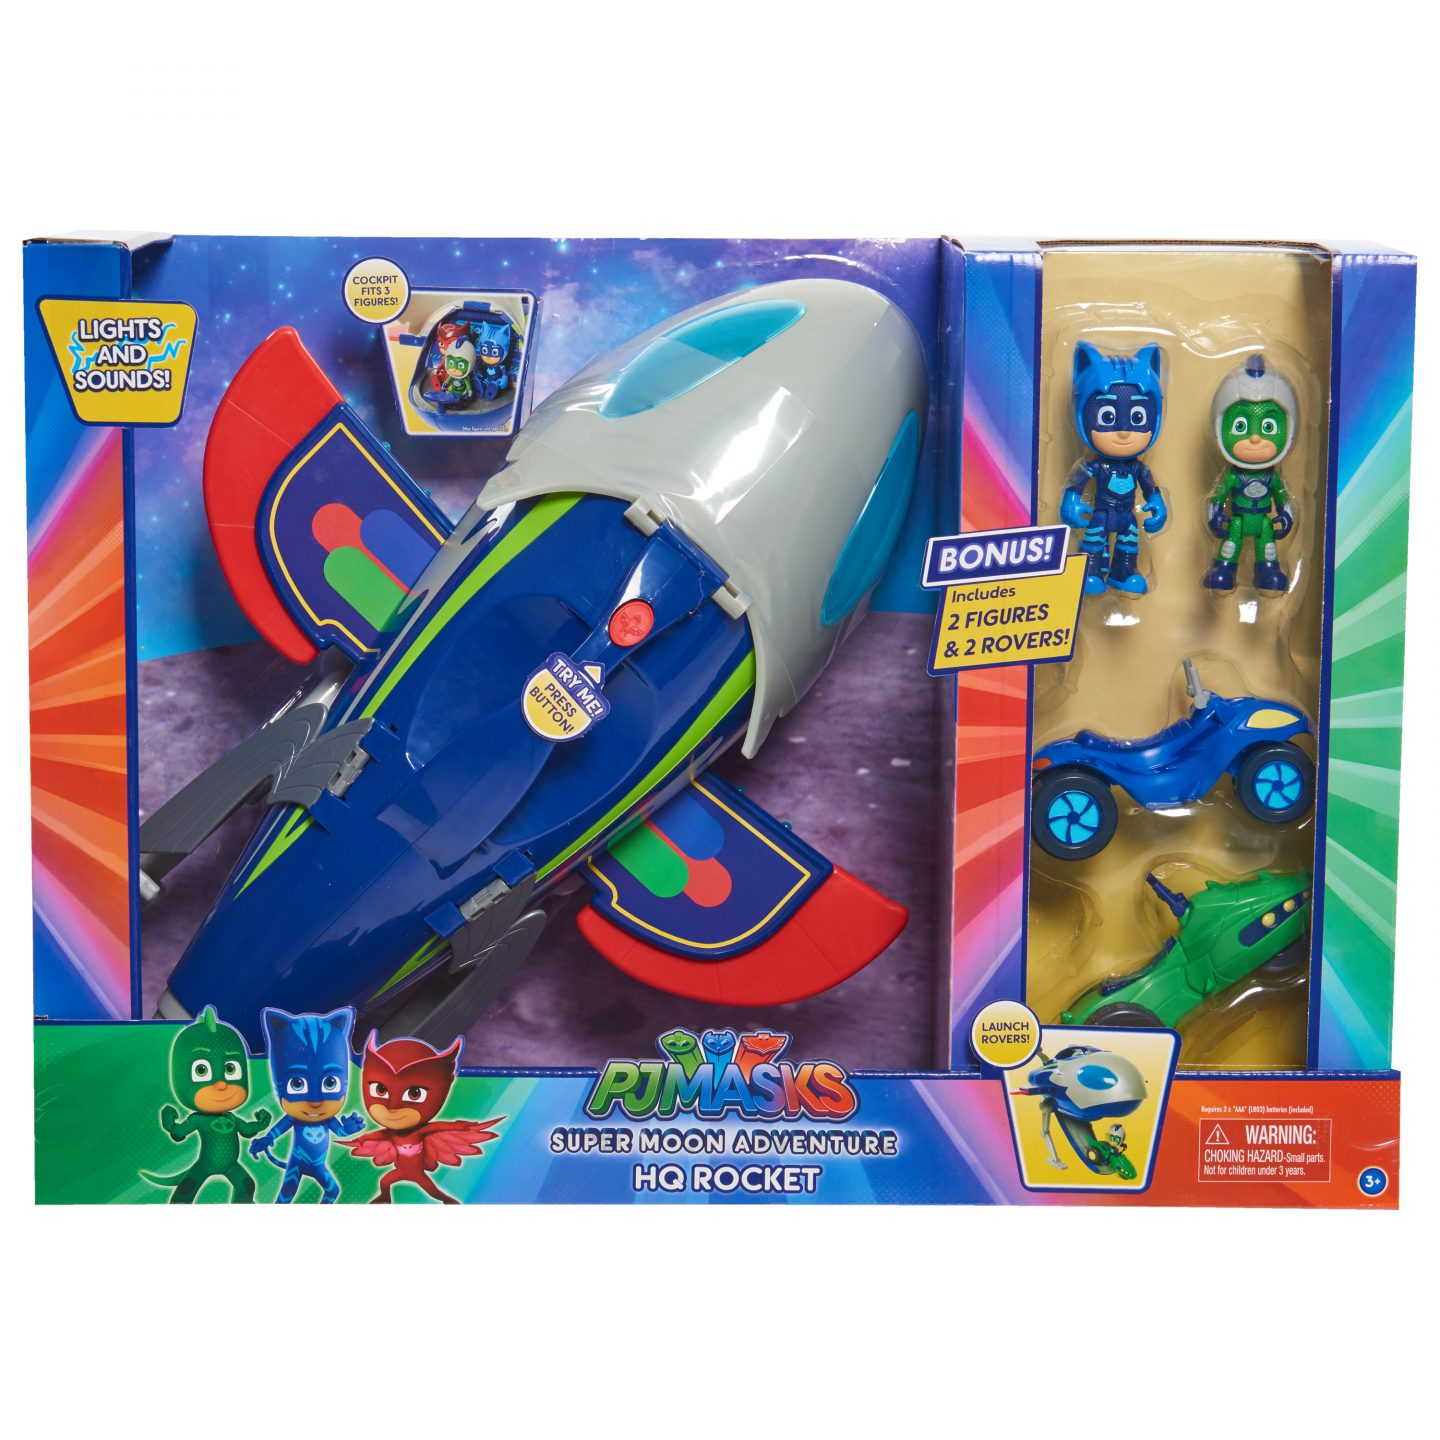 PJ Masks with Rocketship